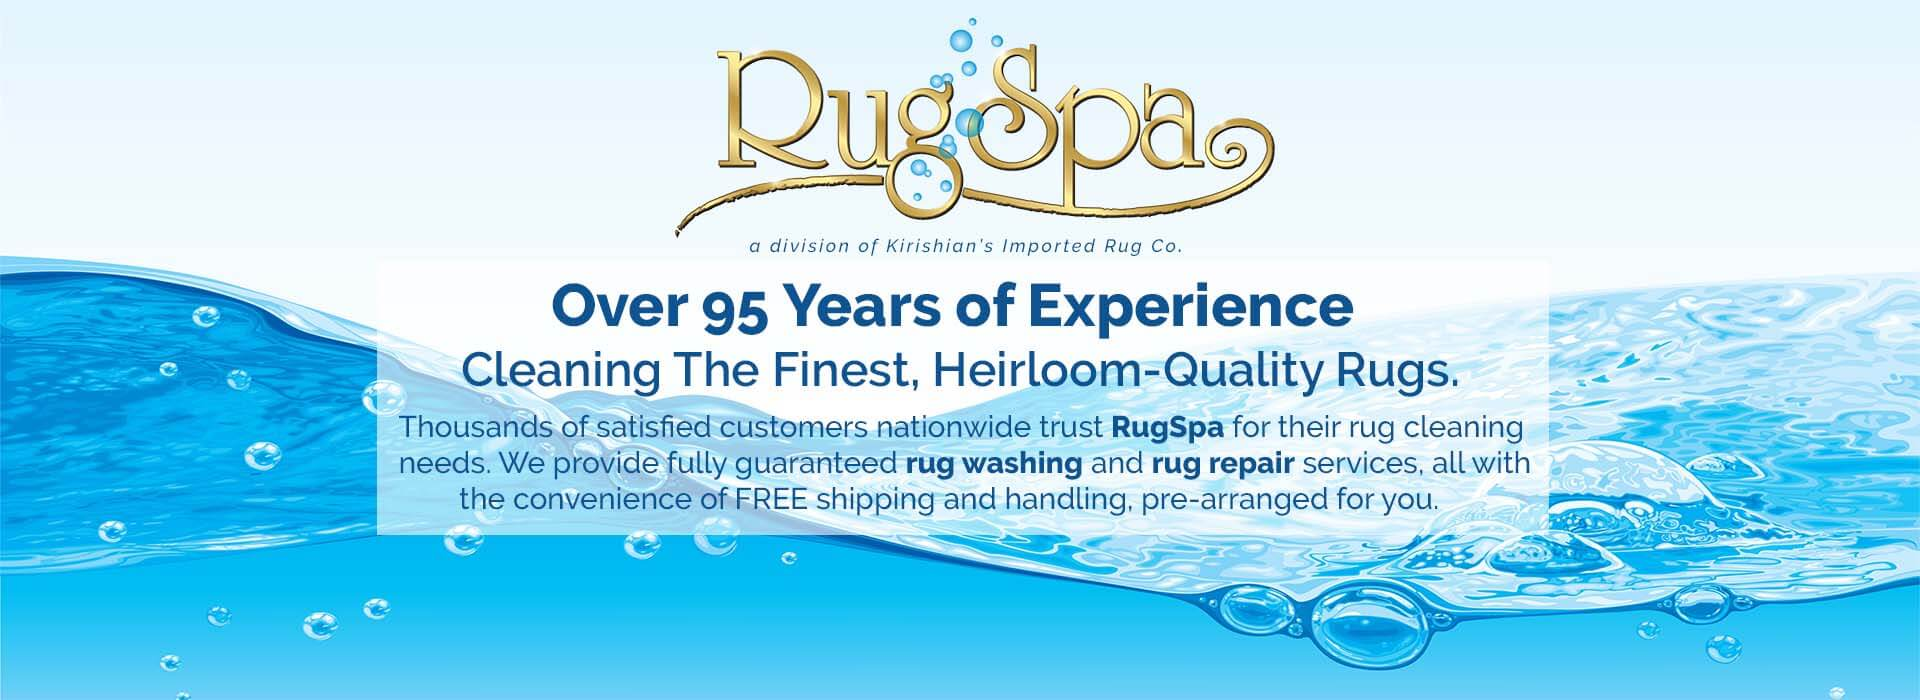 Over 95 Years of Experience